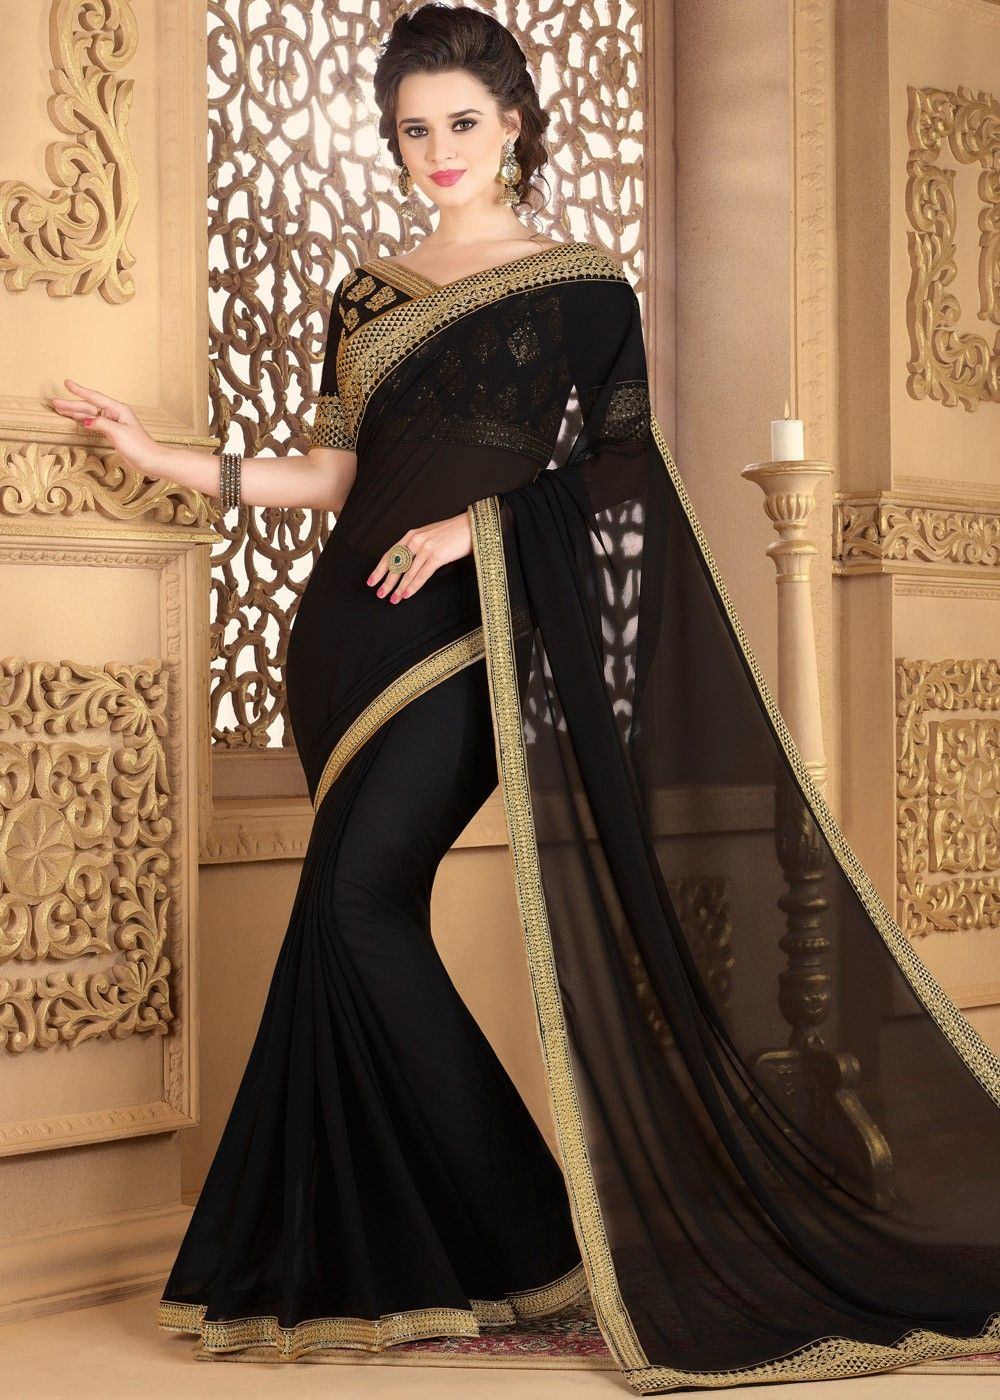 ce1d724cdf Be #party ready in this #black #georgette #saree enhanced by #embroidered  lace border throughout.